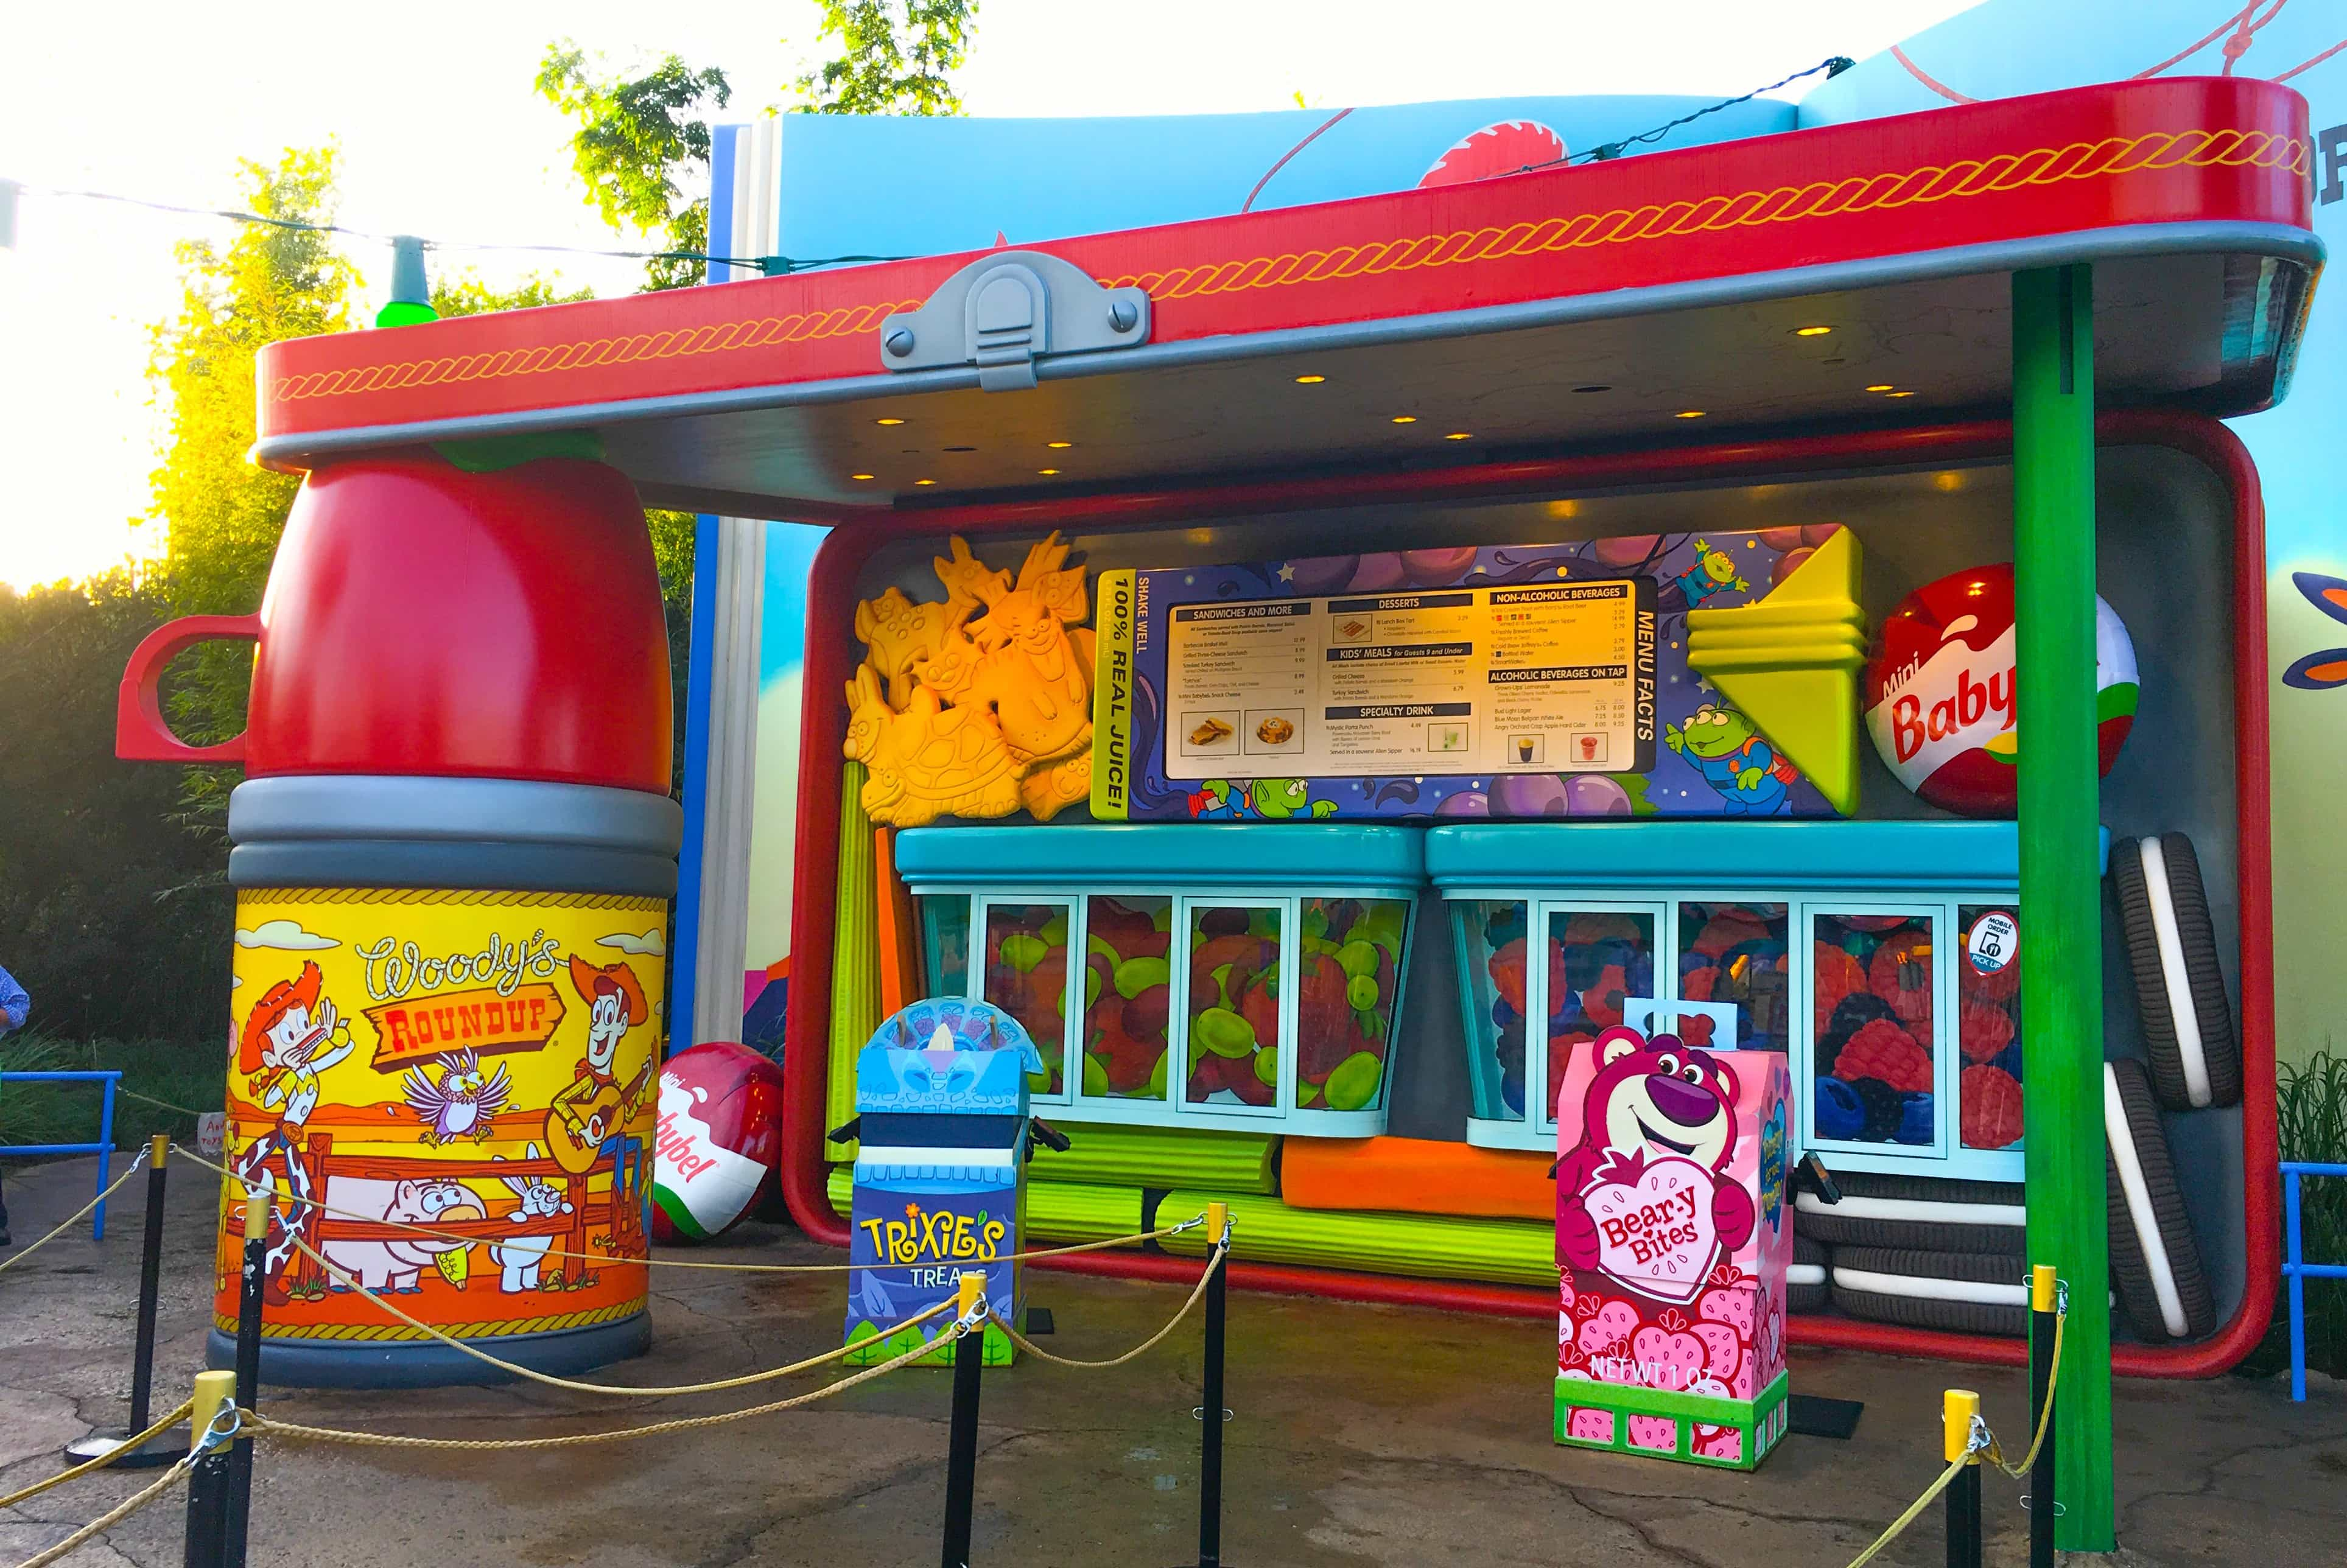 10 Best Themed Quick Service Restaurants At Walt Disney